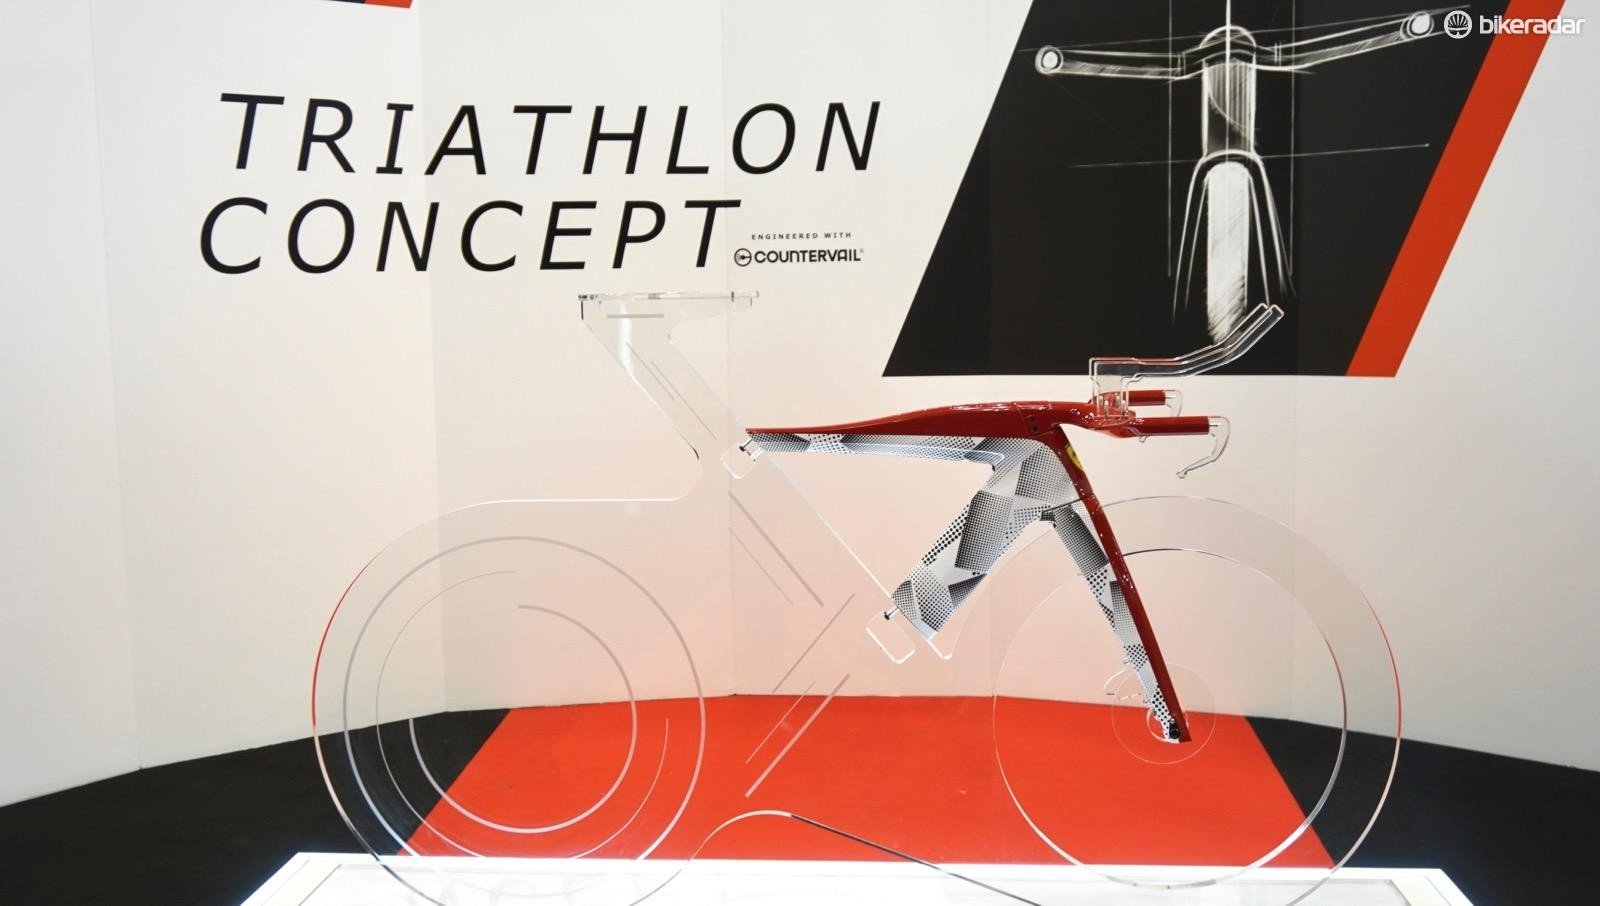 Bianchi and Ferarri are just beginning collaborative work on a triathlon bike